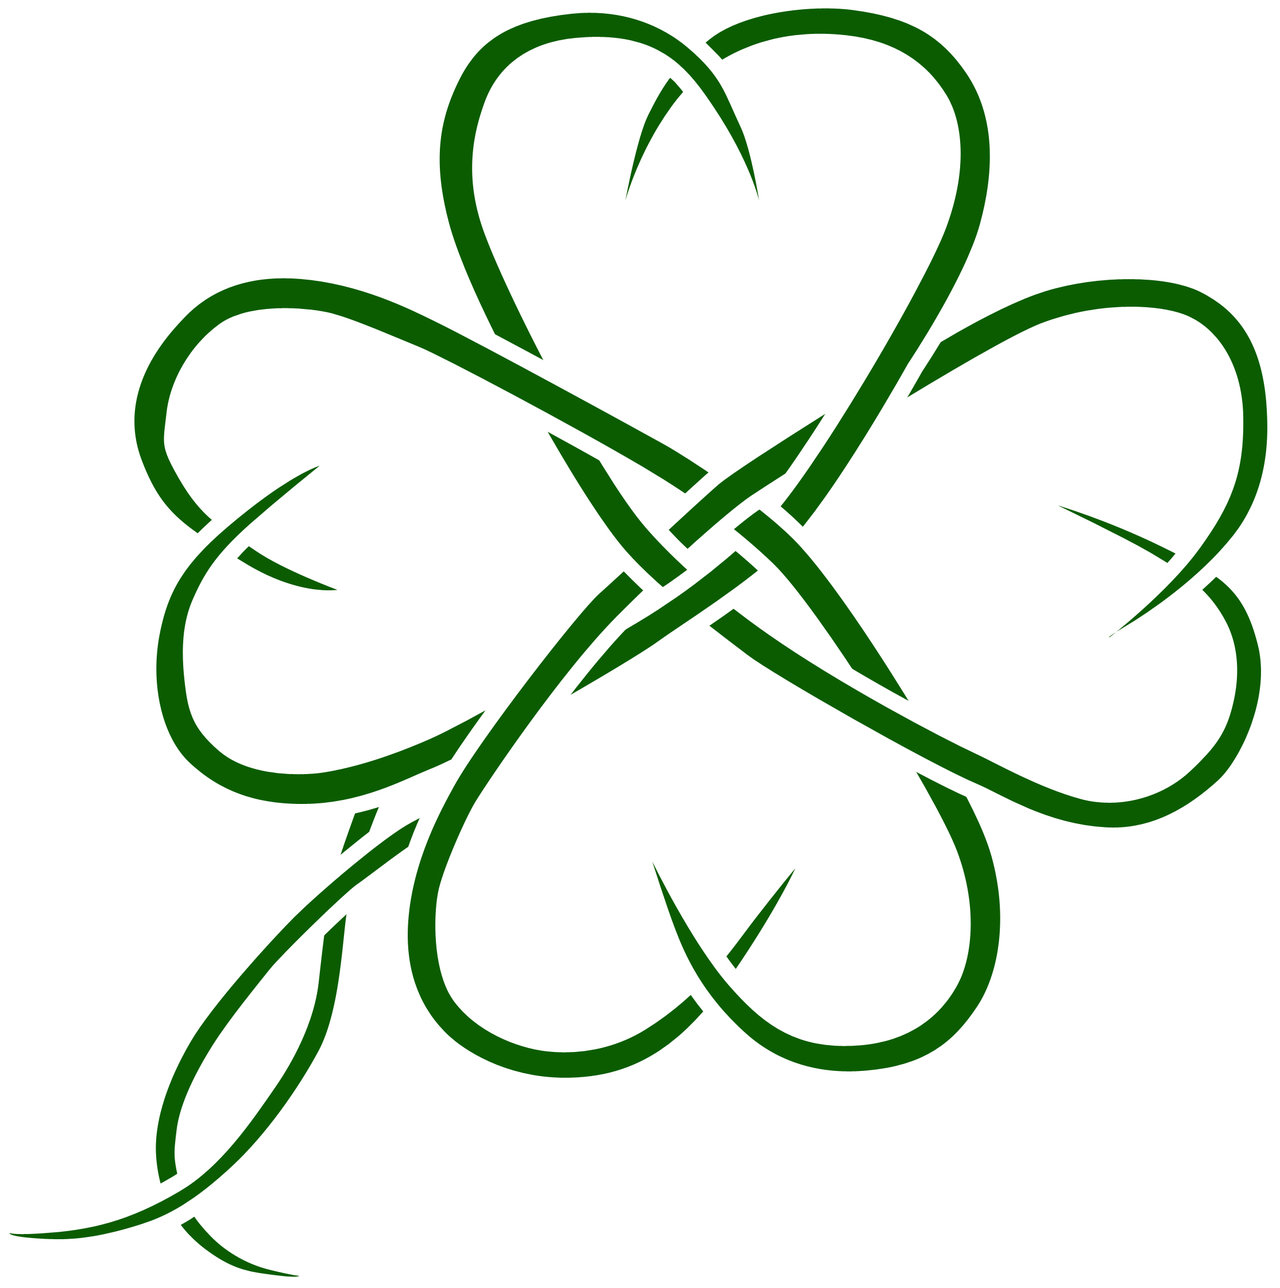 Celtic four leaf clover tatto by seanroche on deviantART